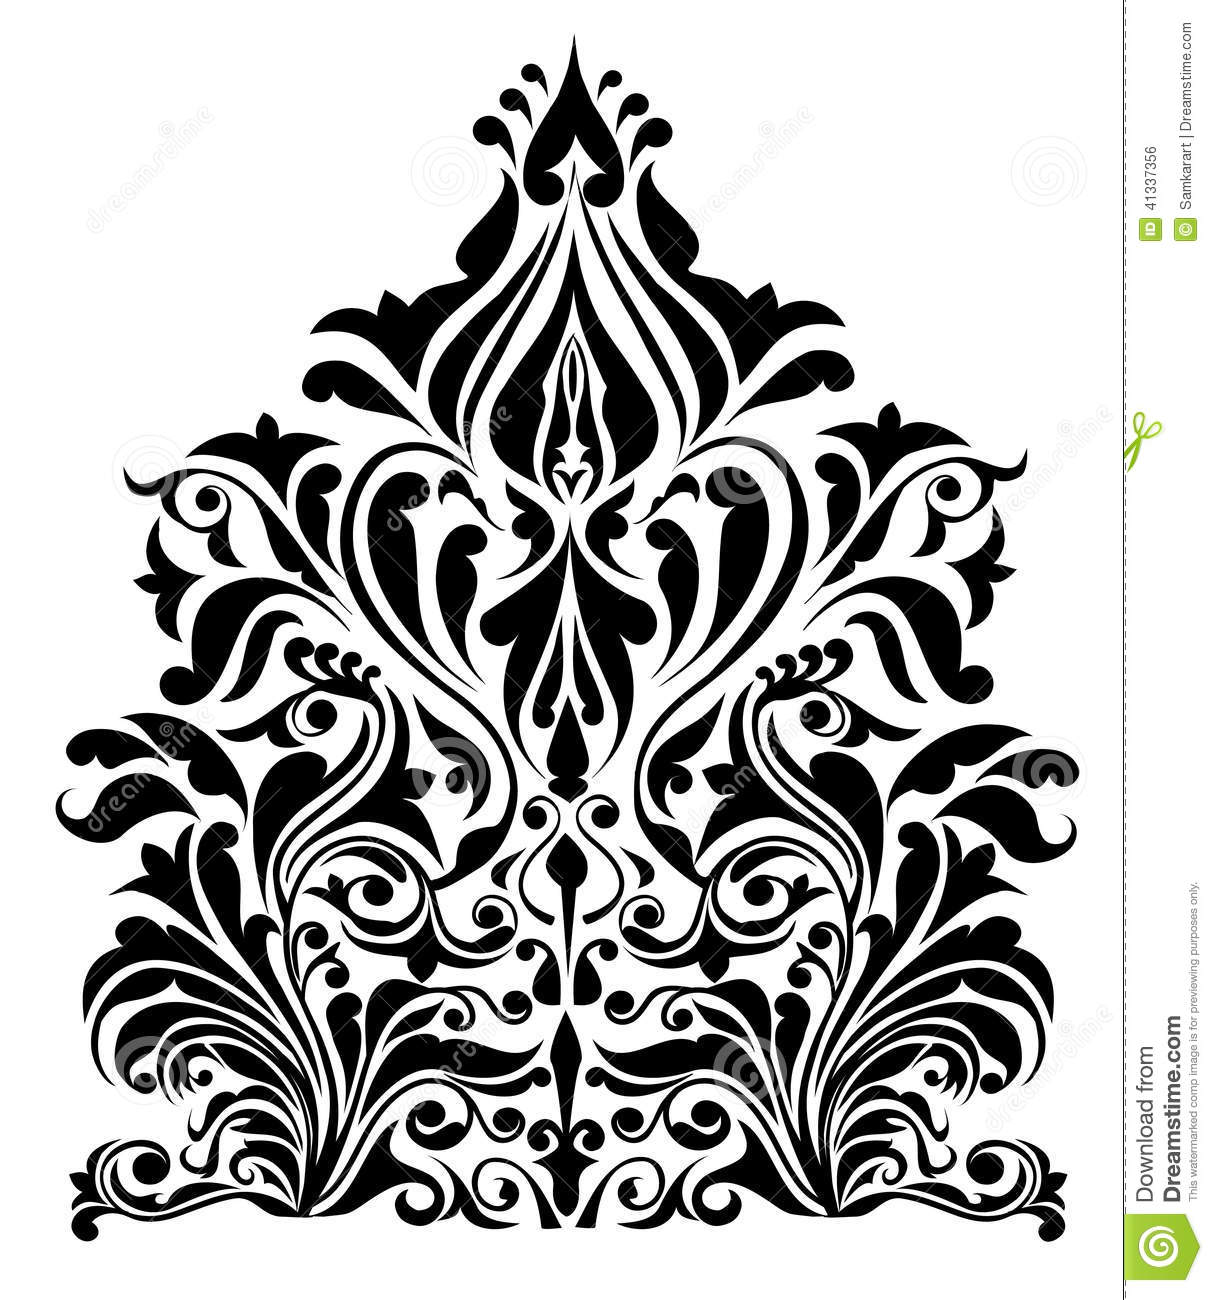 floral pattern -vector stock vector